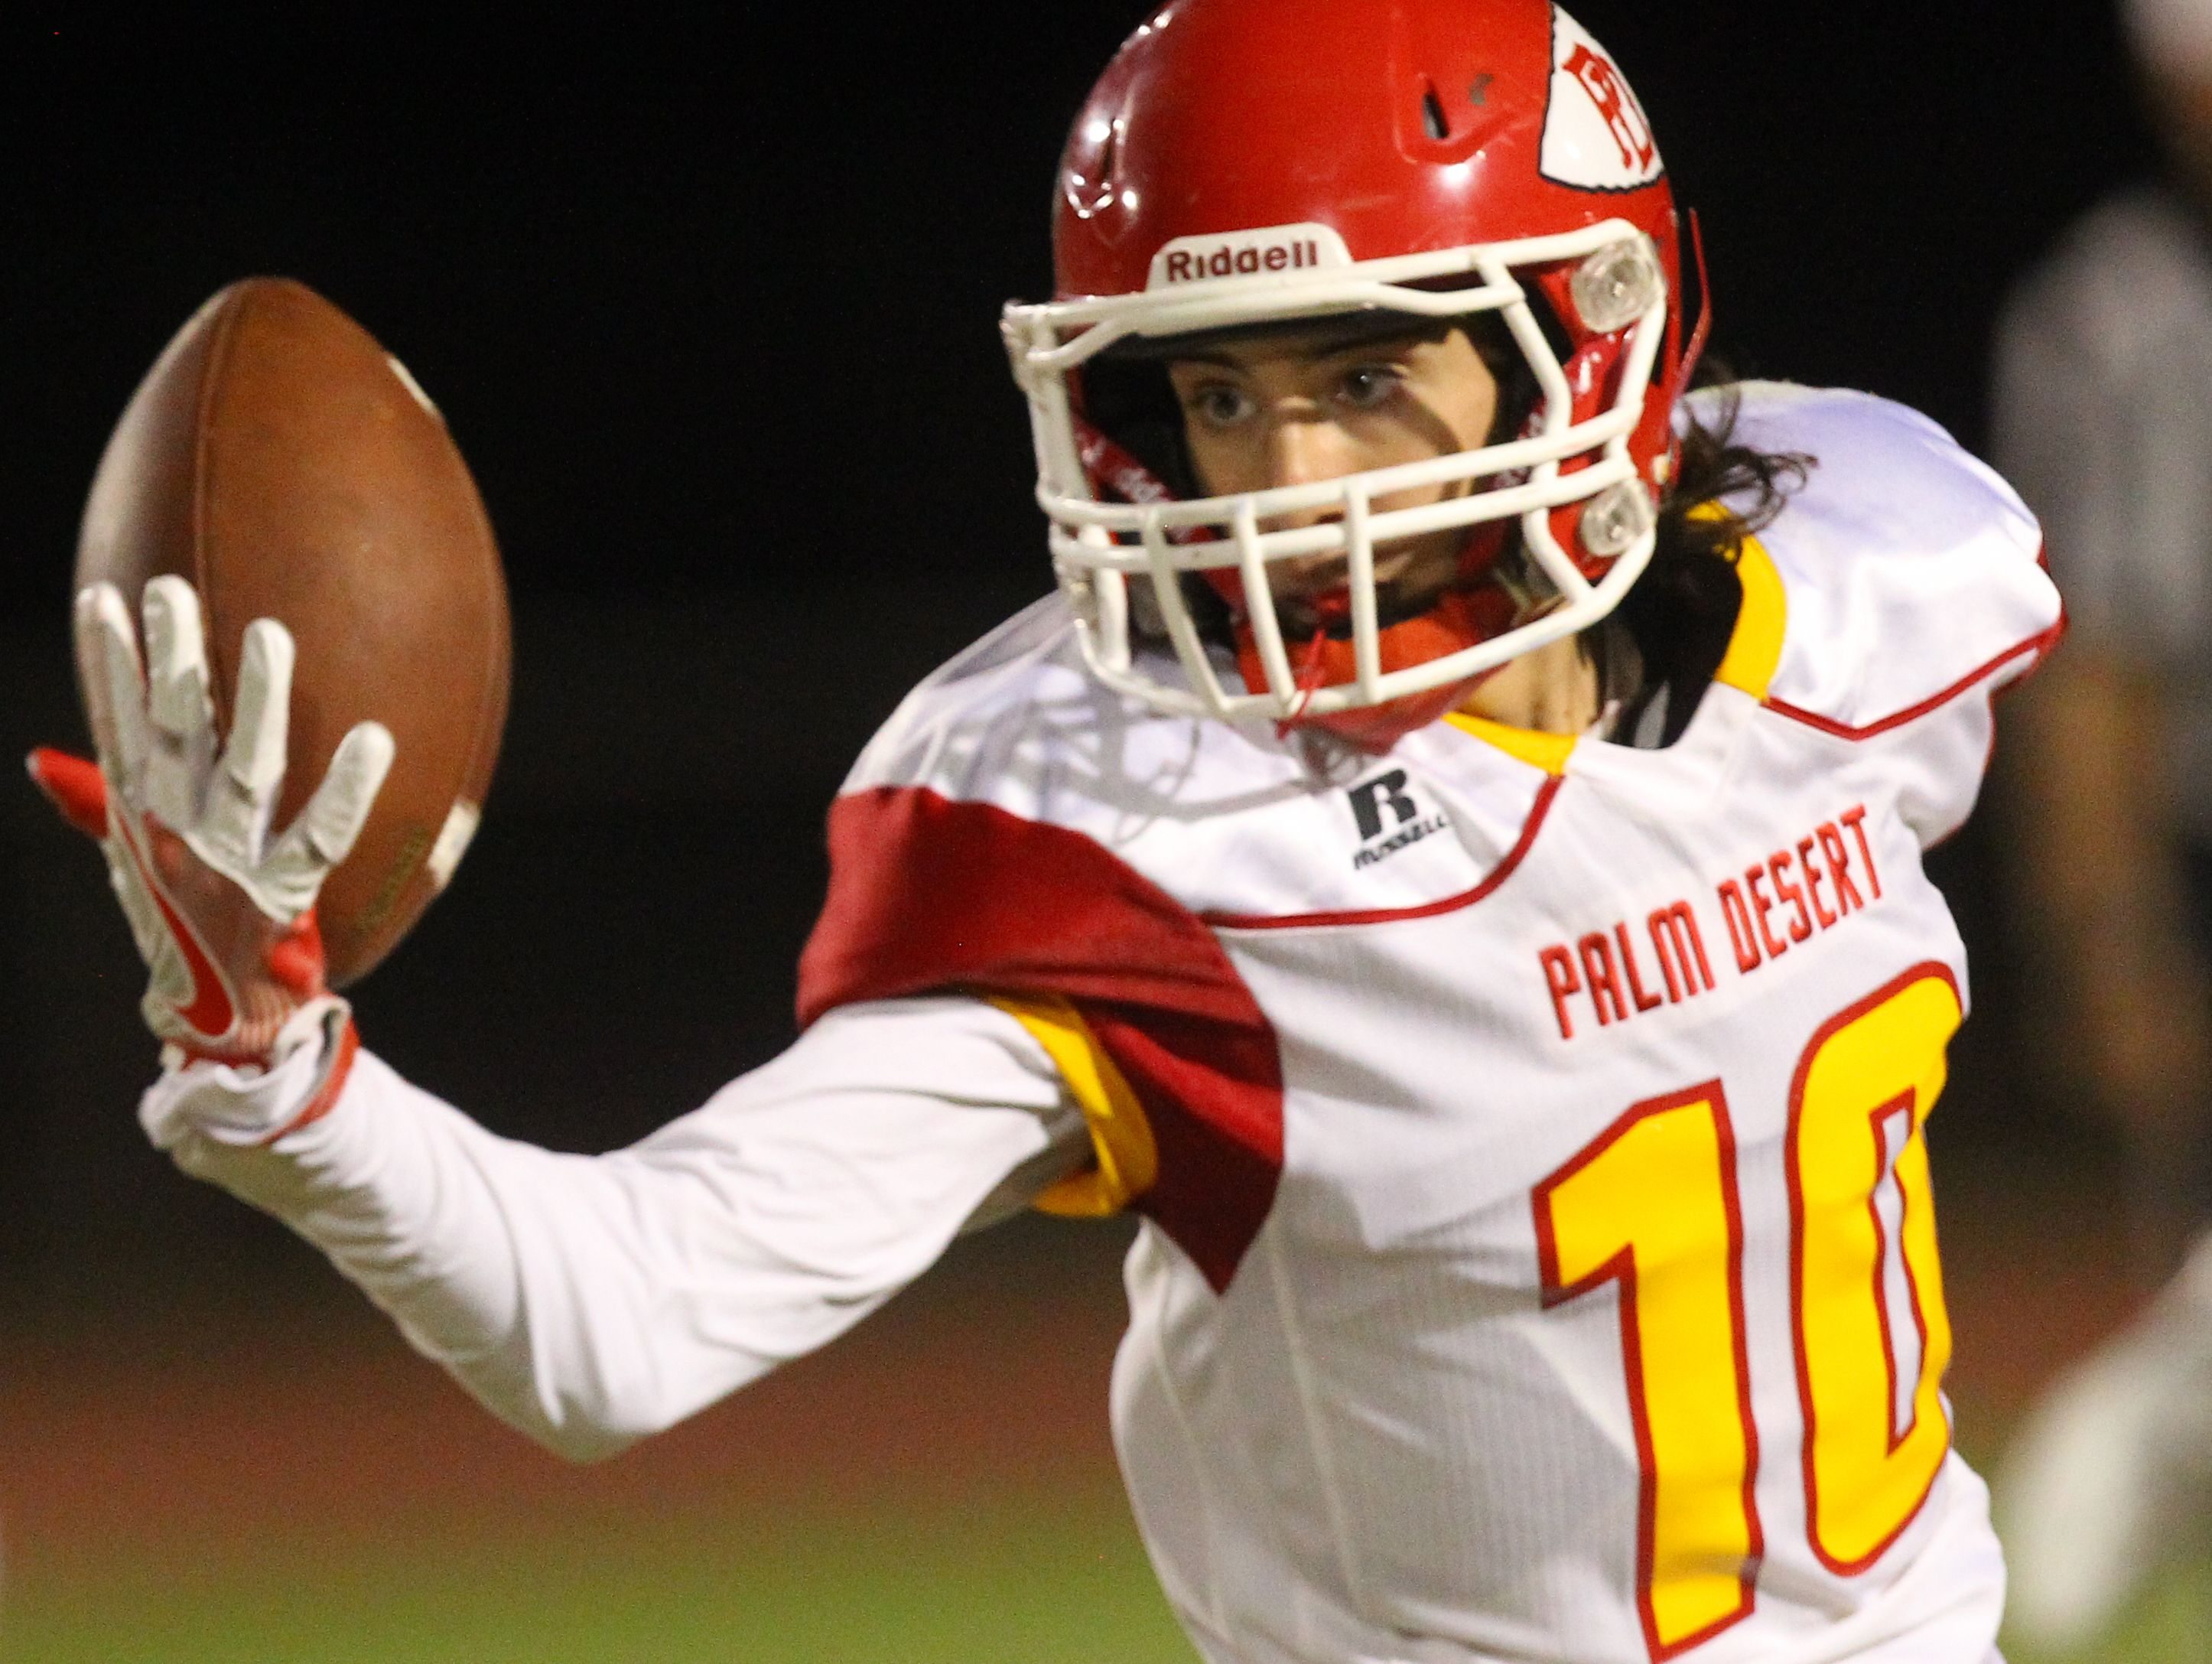 Palm Desert High School's #10 makes an attempt to catch a pass with one hand but fails during their visit to Shadow Hills High School in Indio.